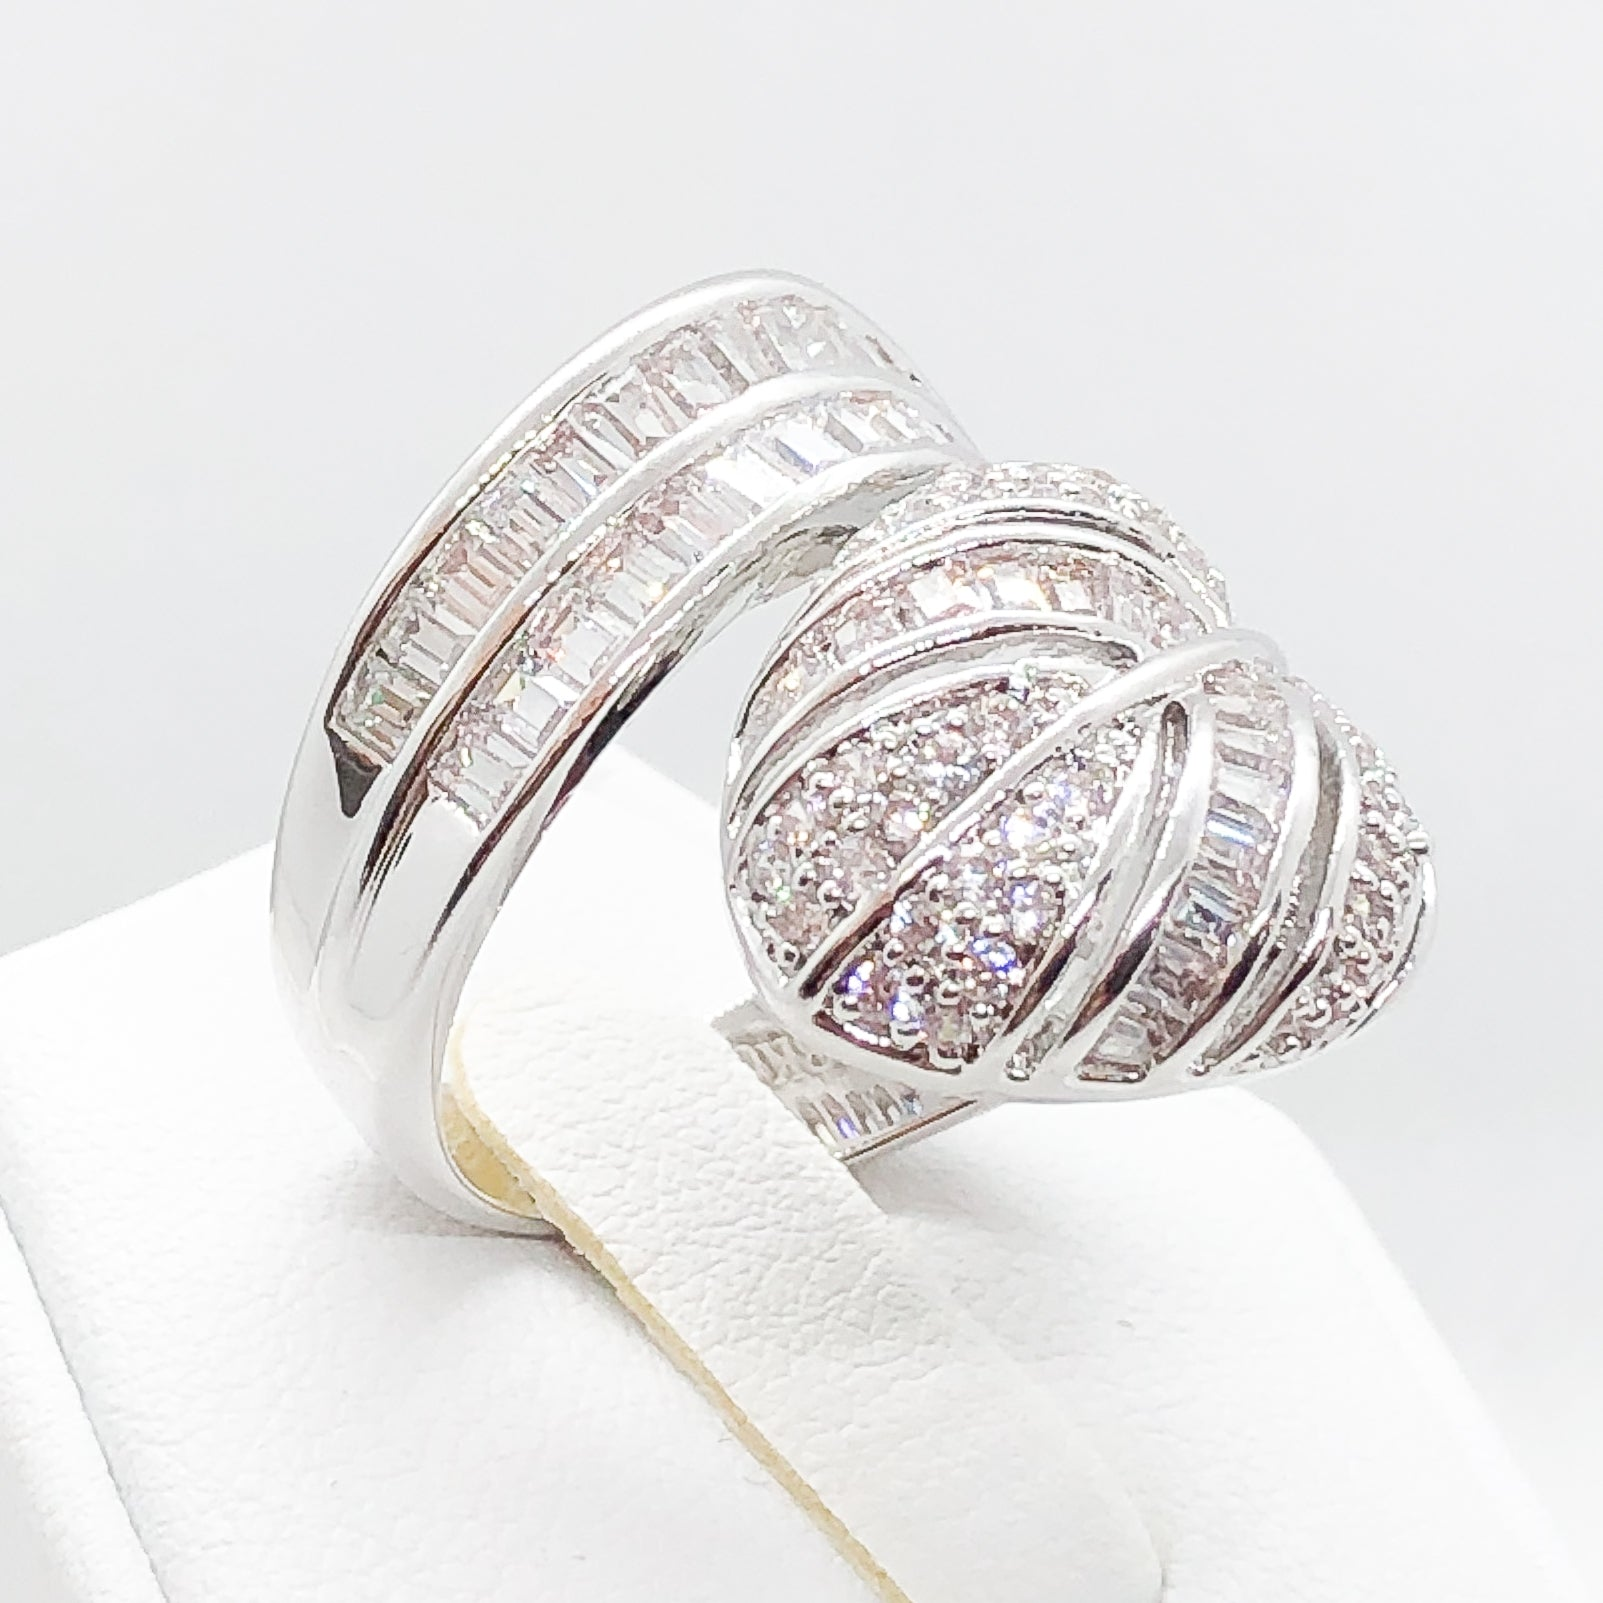 ID:R4149 Women 18K White Gold GF Fashion Jewelry Latest Unique Leaf Design Shimmering Gemstones Cocktail Ring